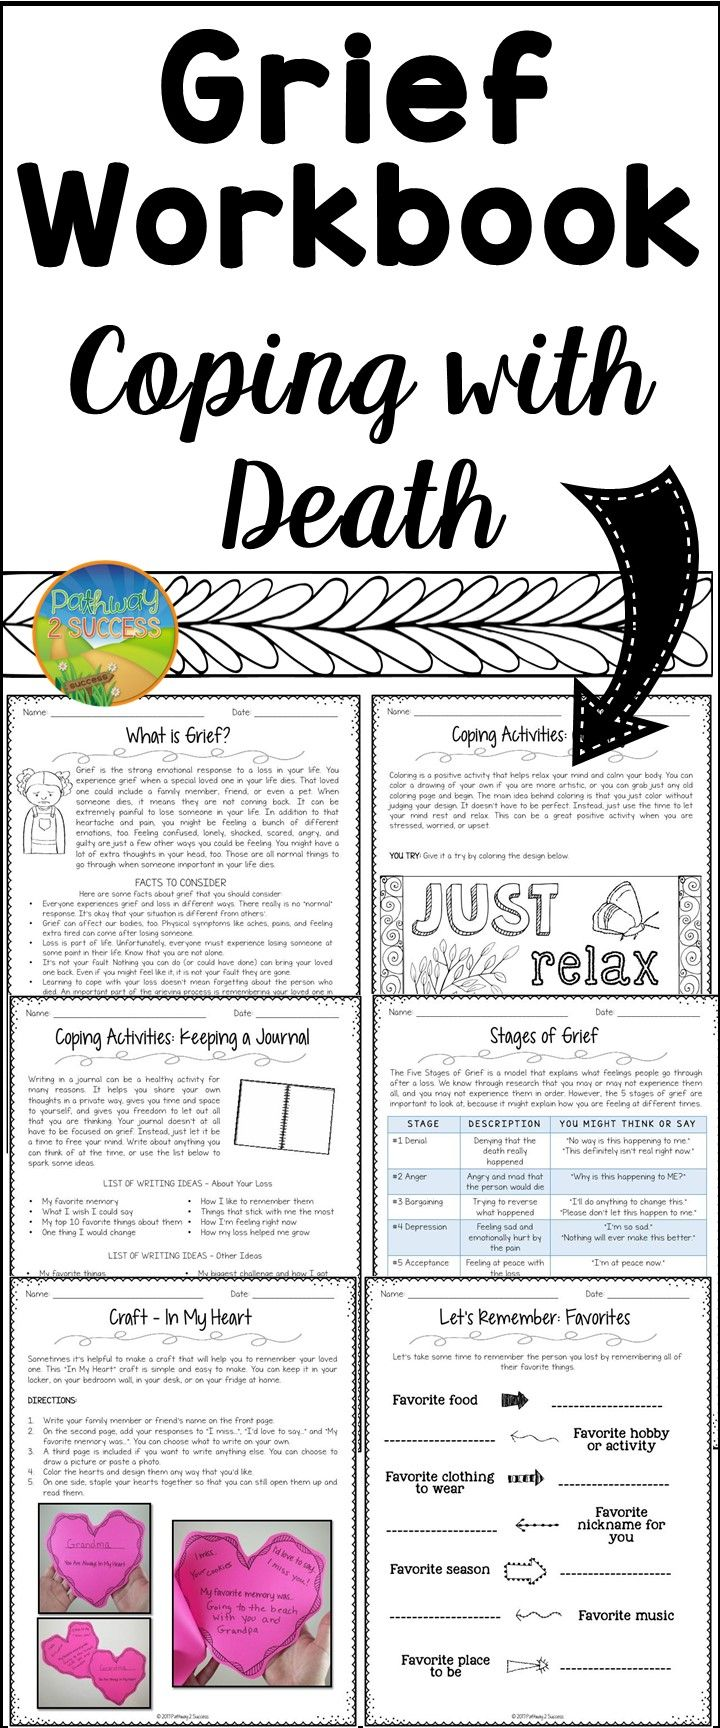 Grief workbook for coping with death. Great resource for counselors, therapists, social workers, and psychologists.